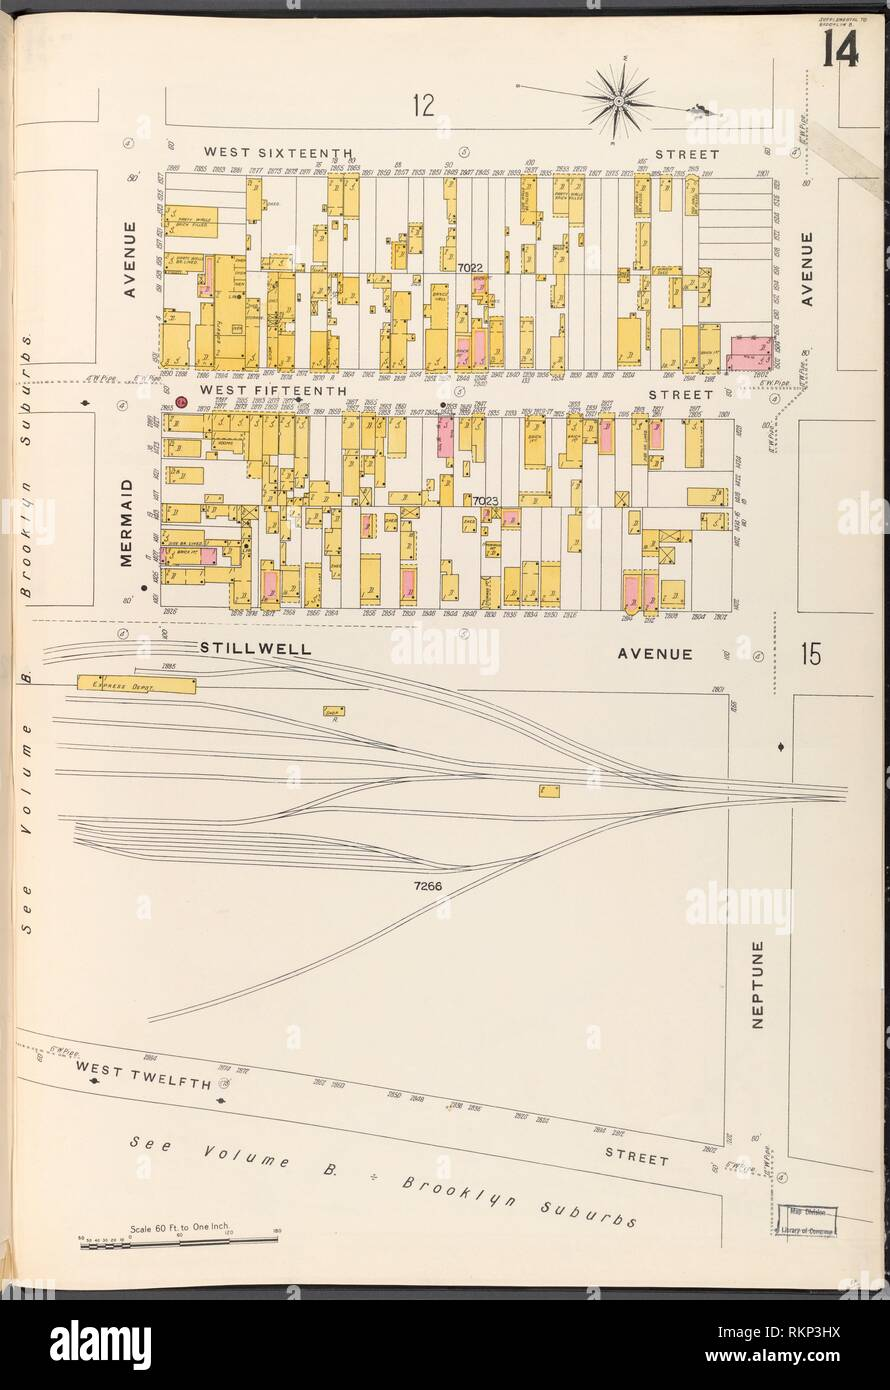 hight resolution of brooklyn vol b plate no 14 map bounded by w 16th st